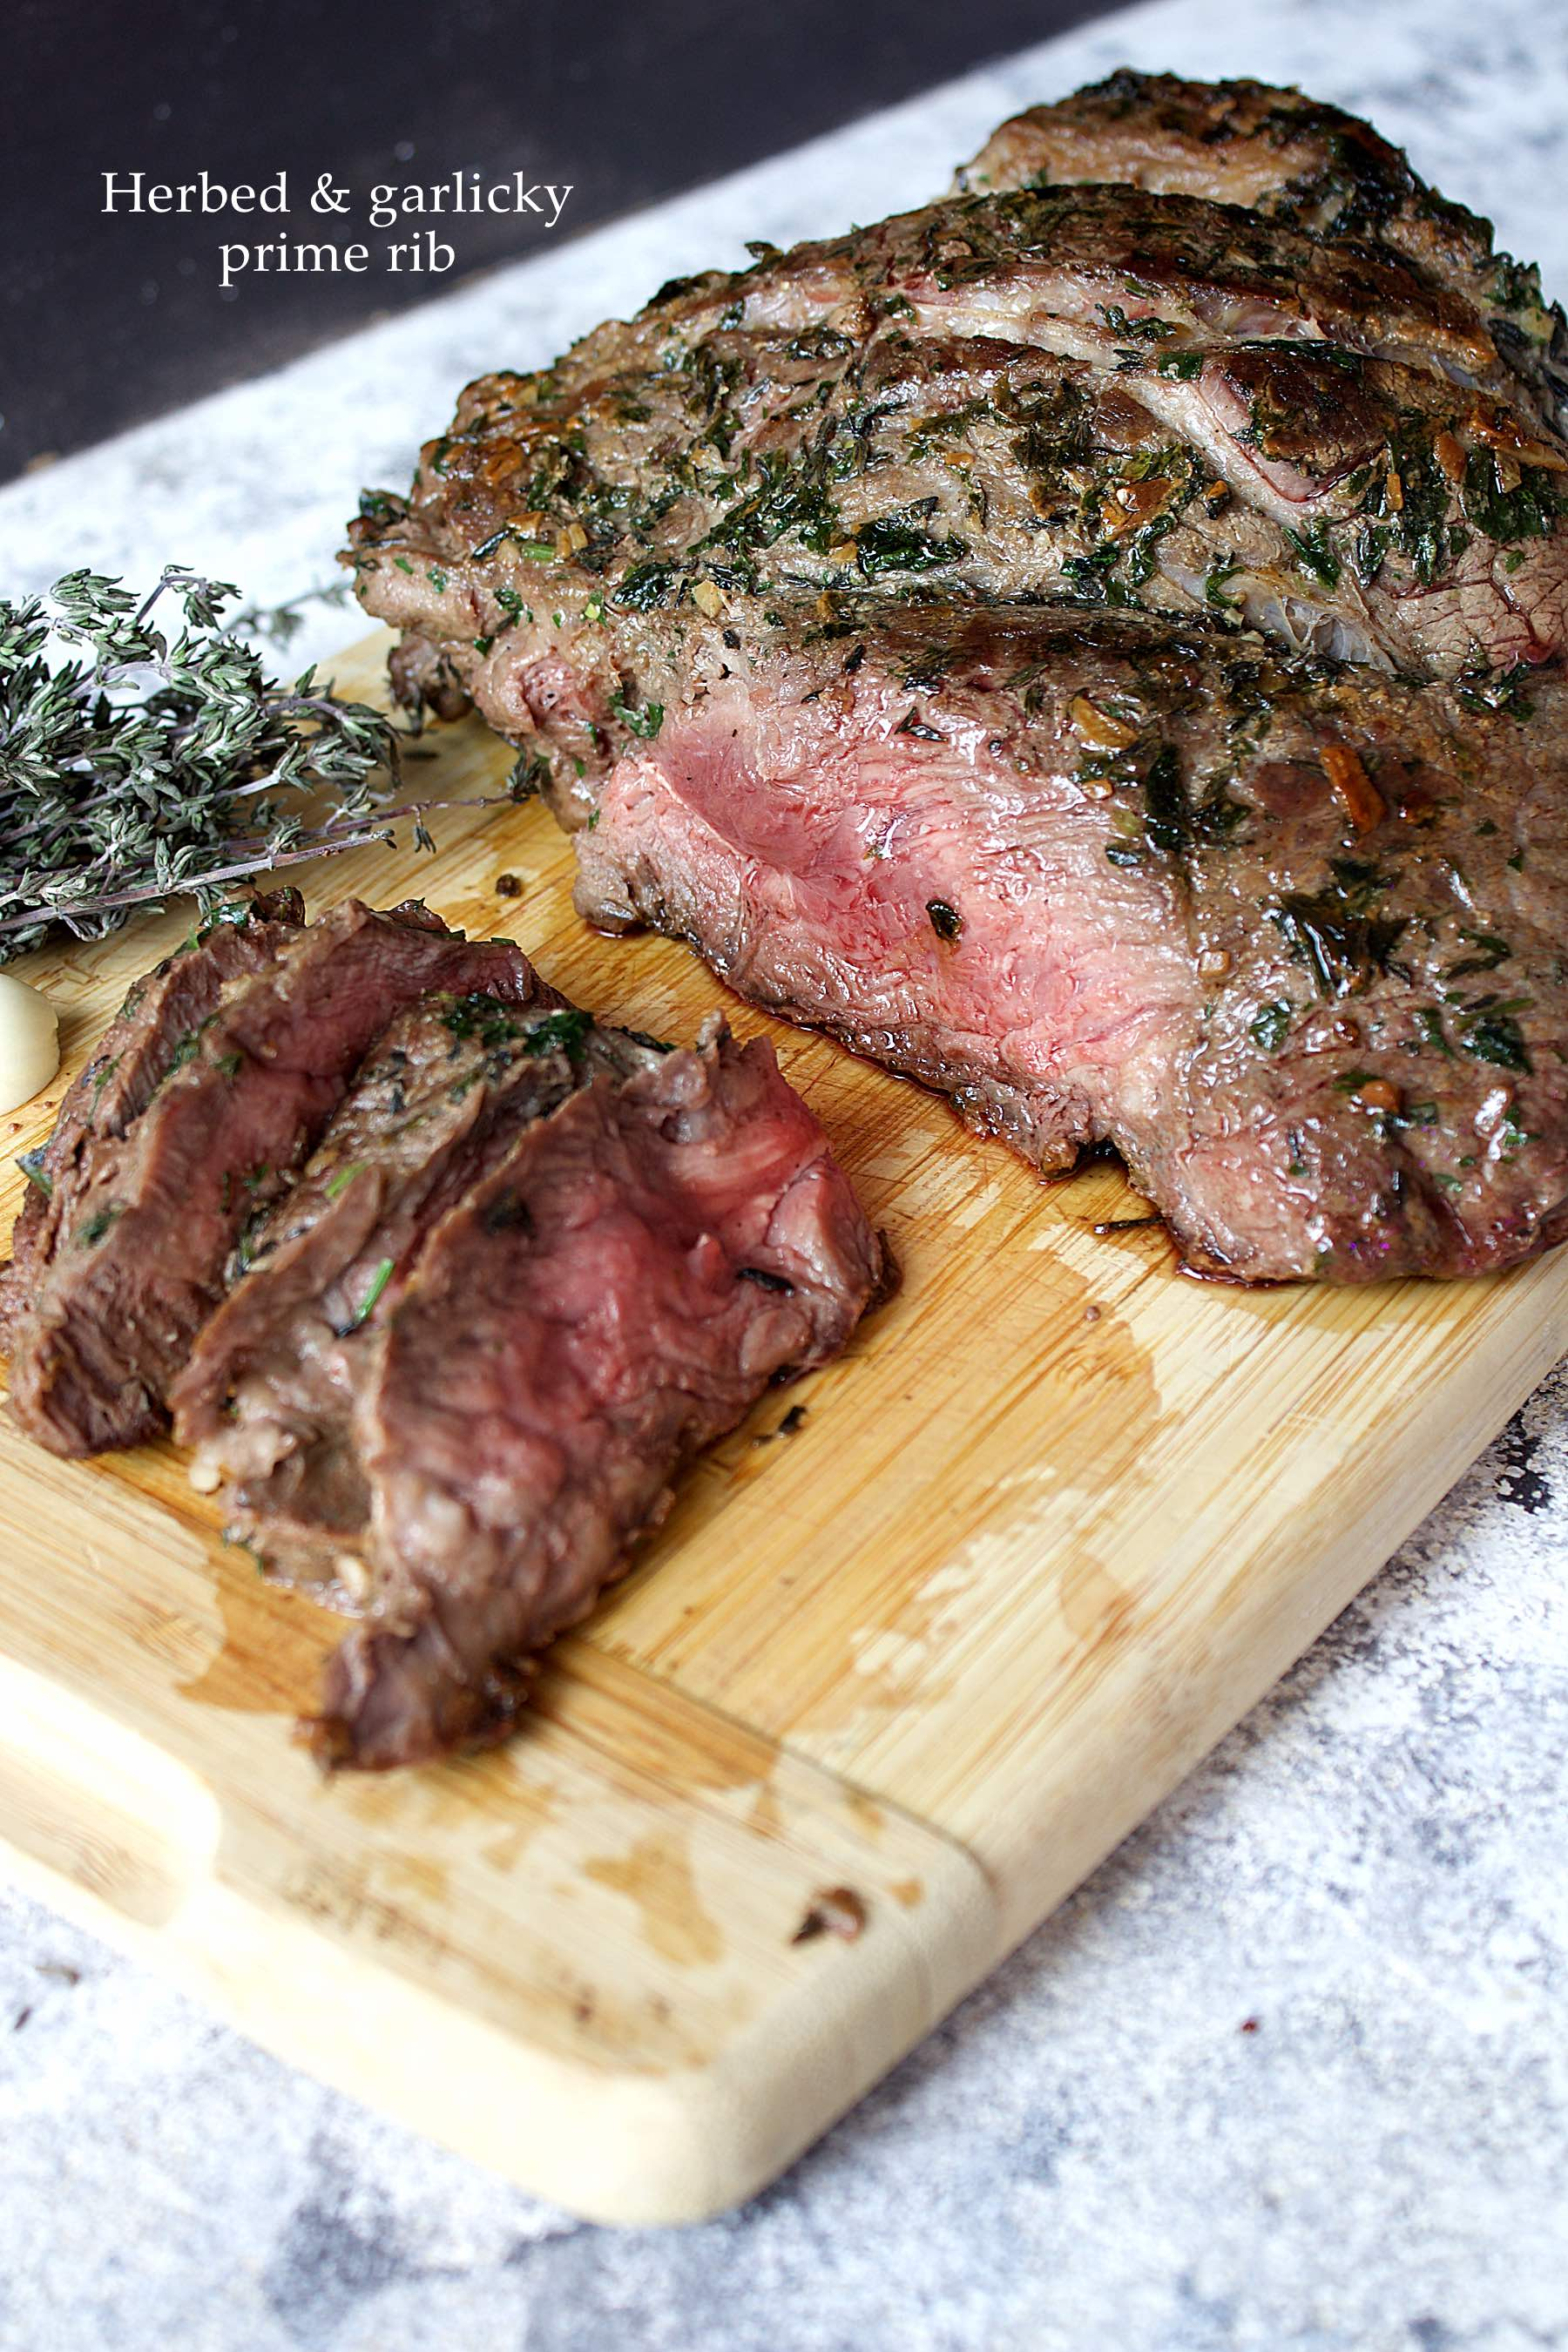 Herby and garlicky prime rib